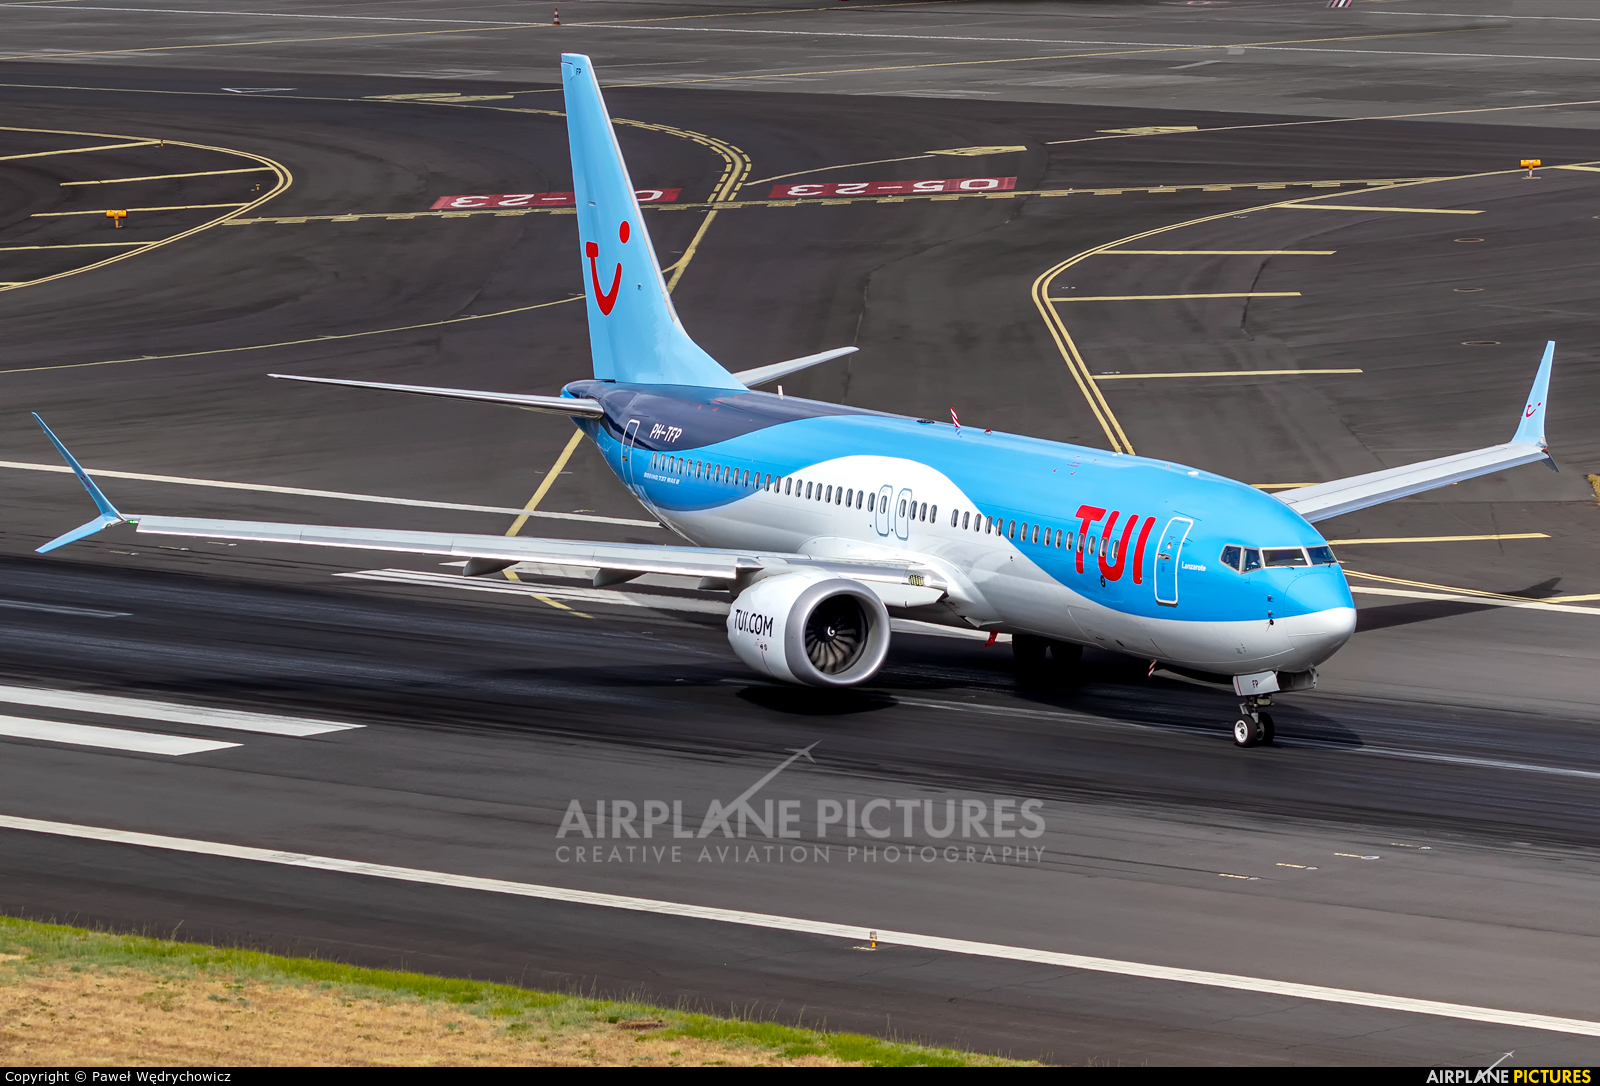 TUI Airlines Netherlands PH-TFP aircraft at Madeira